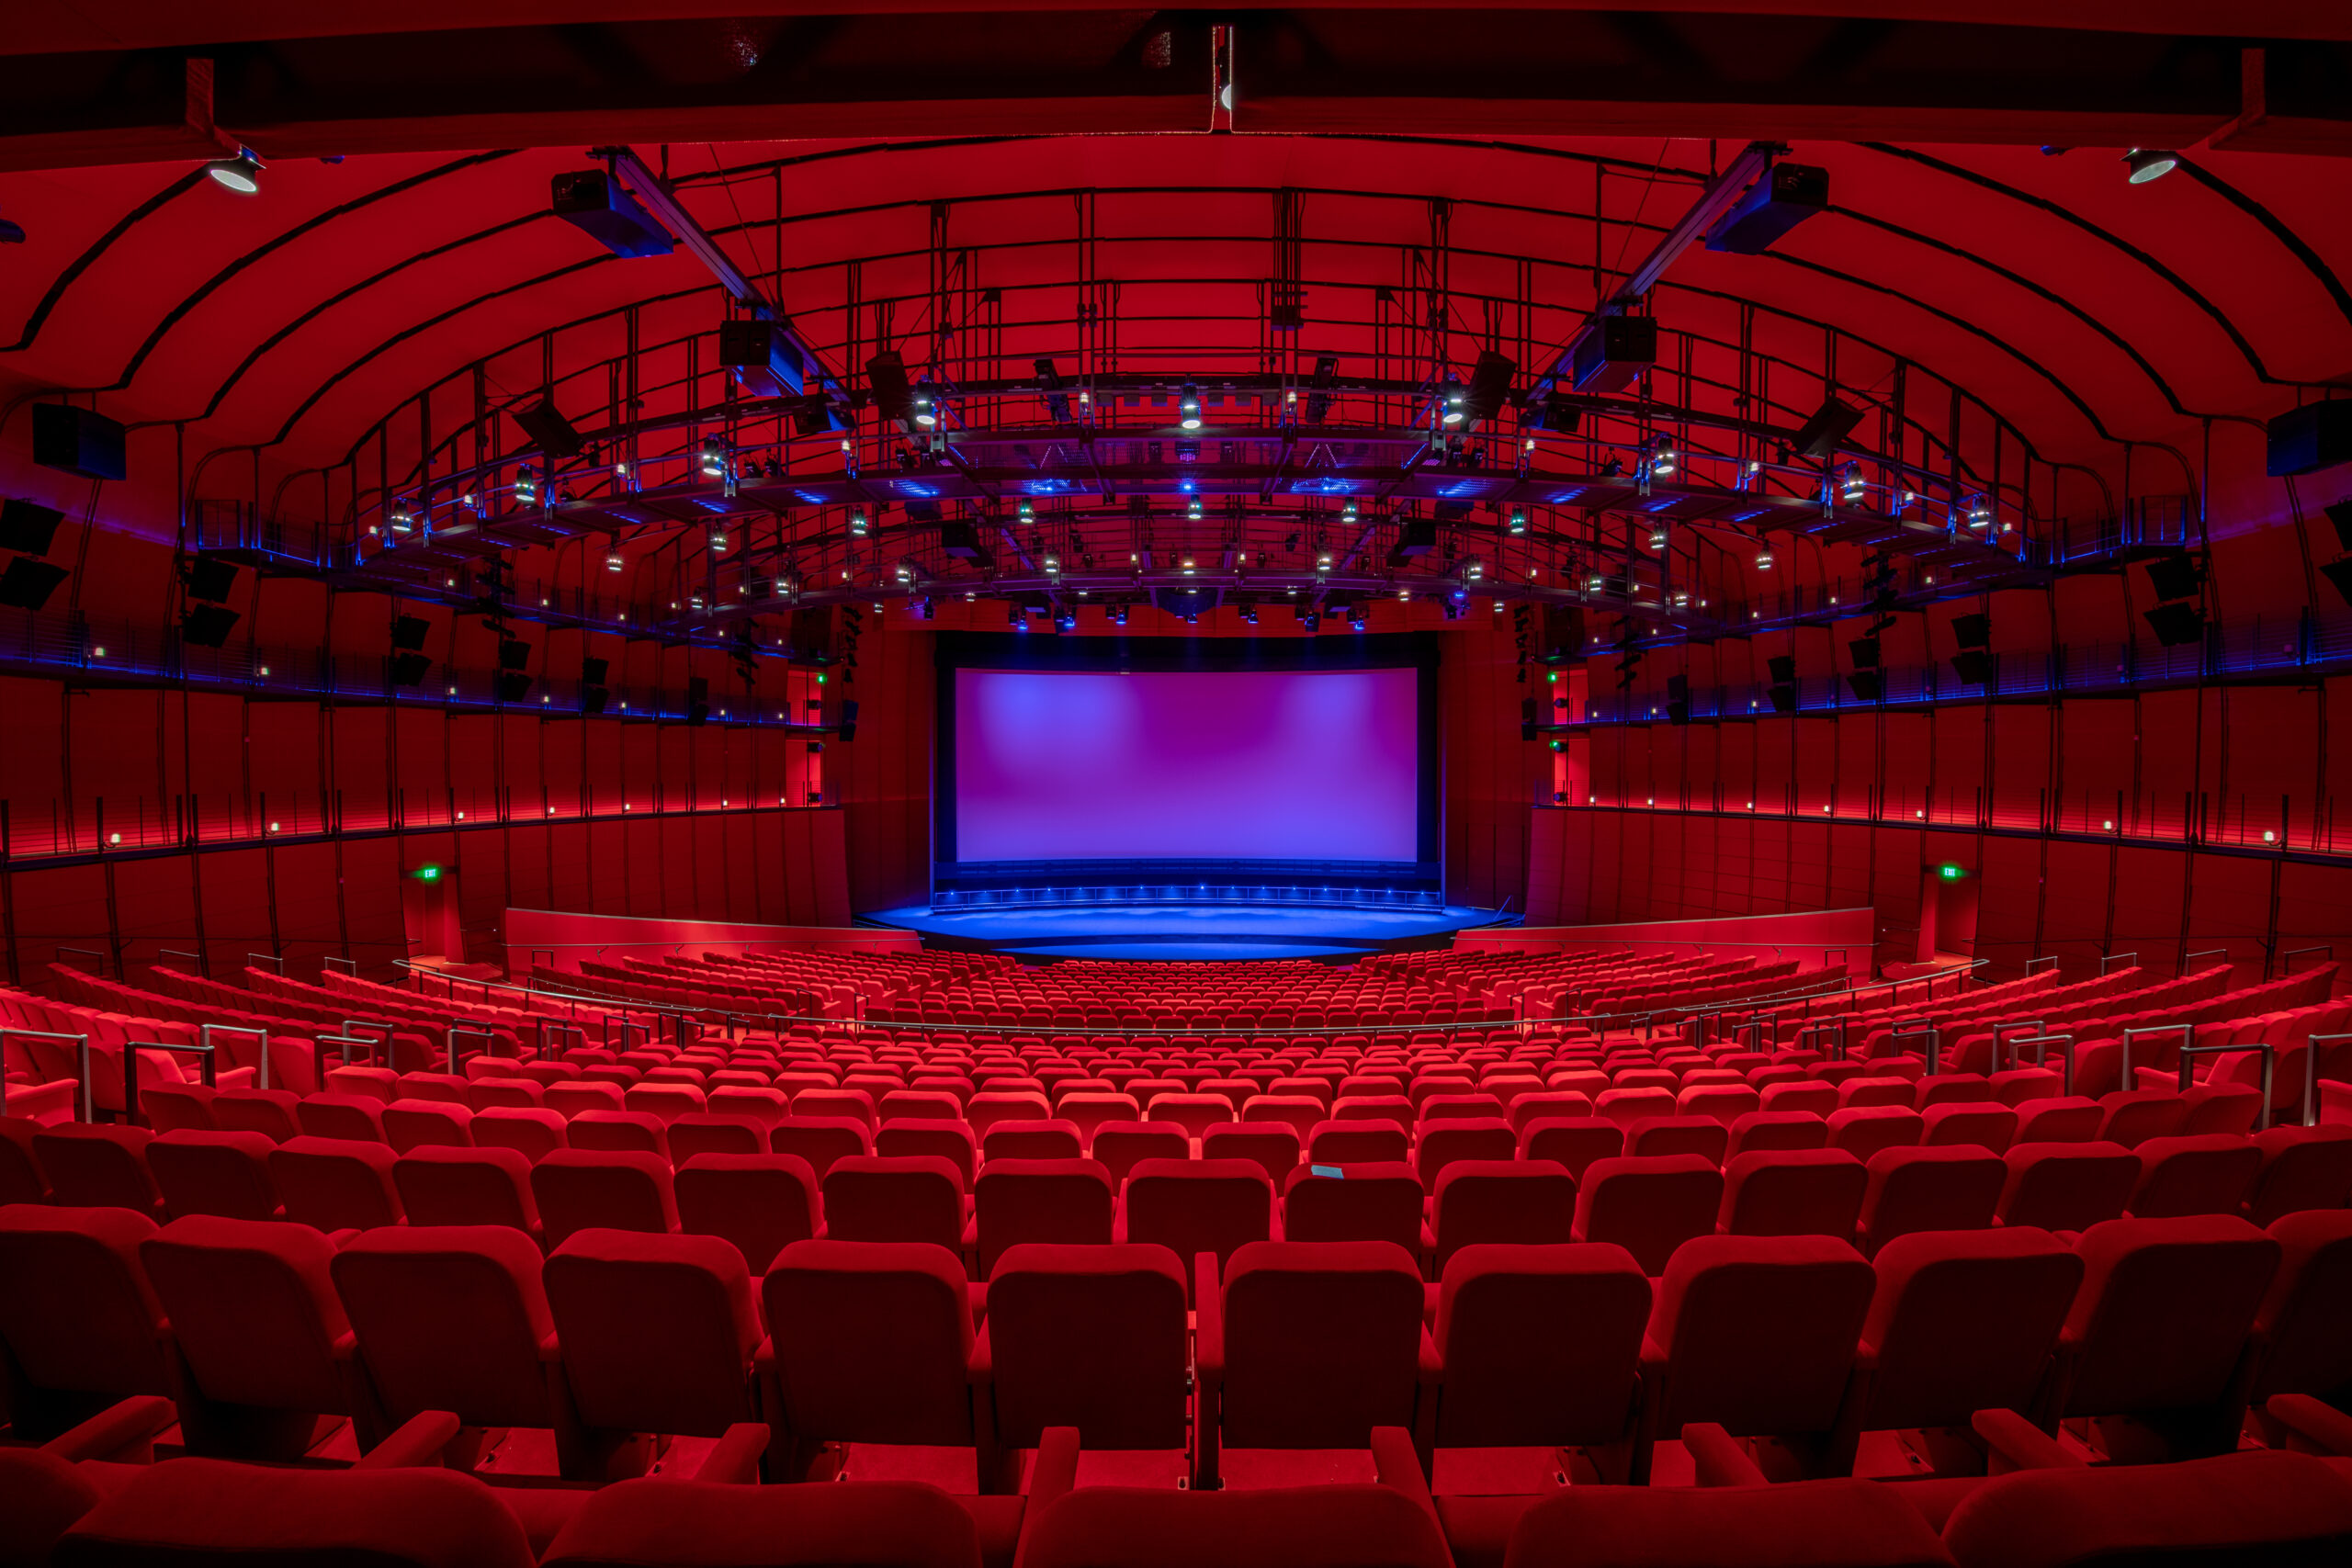 AMMP Wolfgang Puck Venue Theater View